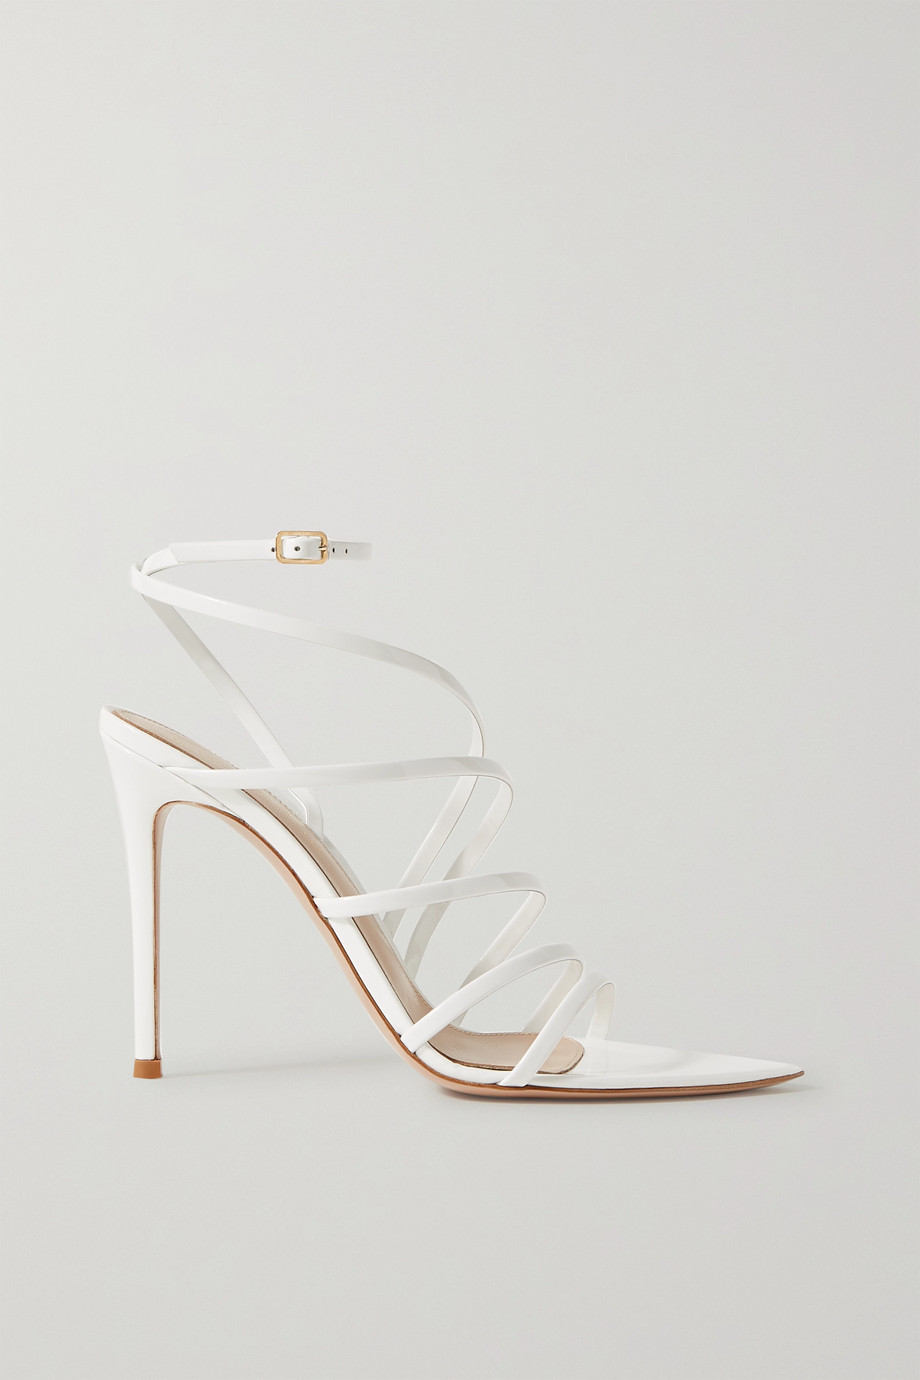 Gianvito Rossi 105 patent-leather sandals